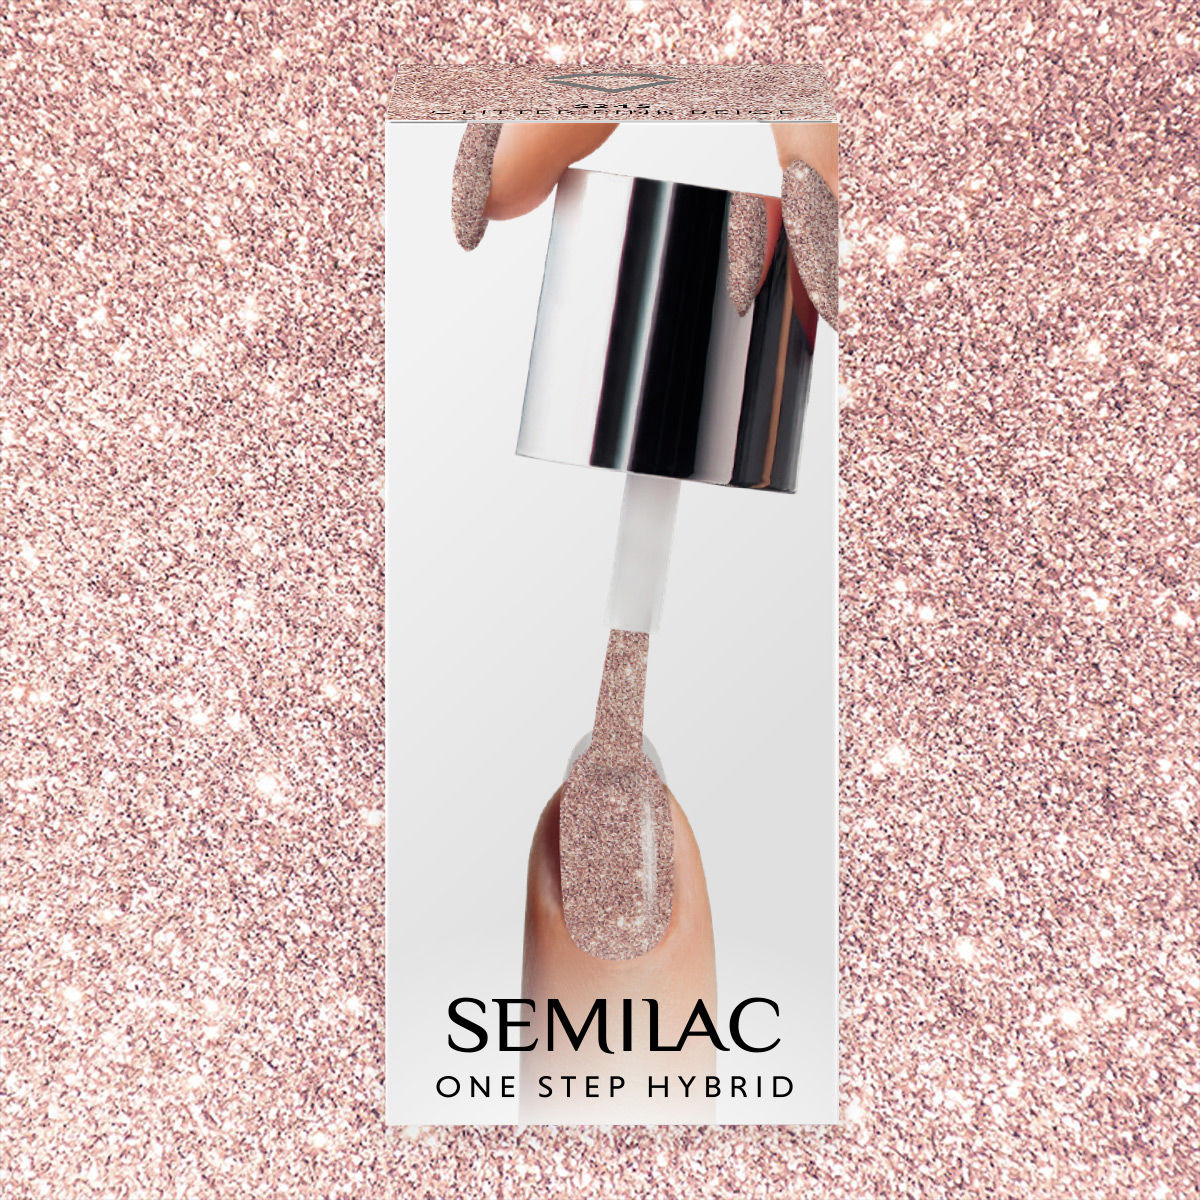 Semilac One Step Gel Polish Pen 3ml 245 Glitter Pink Beige - FlowertushBeauty